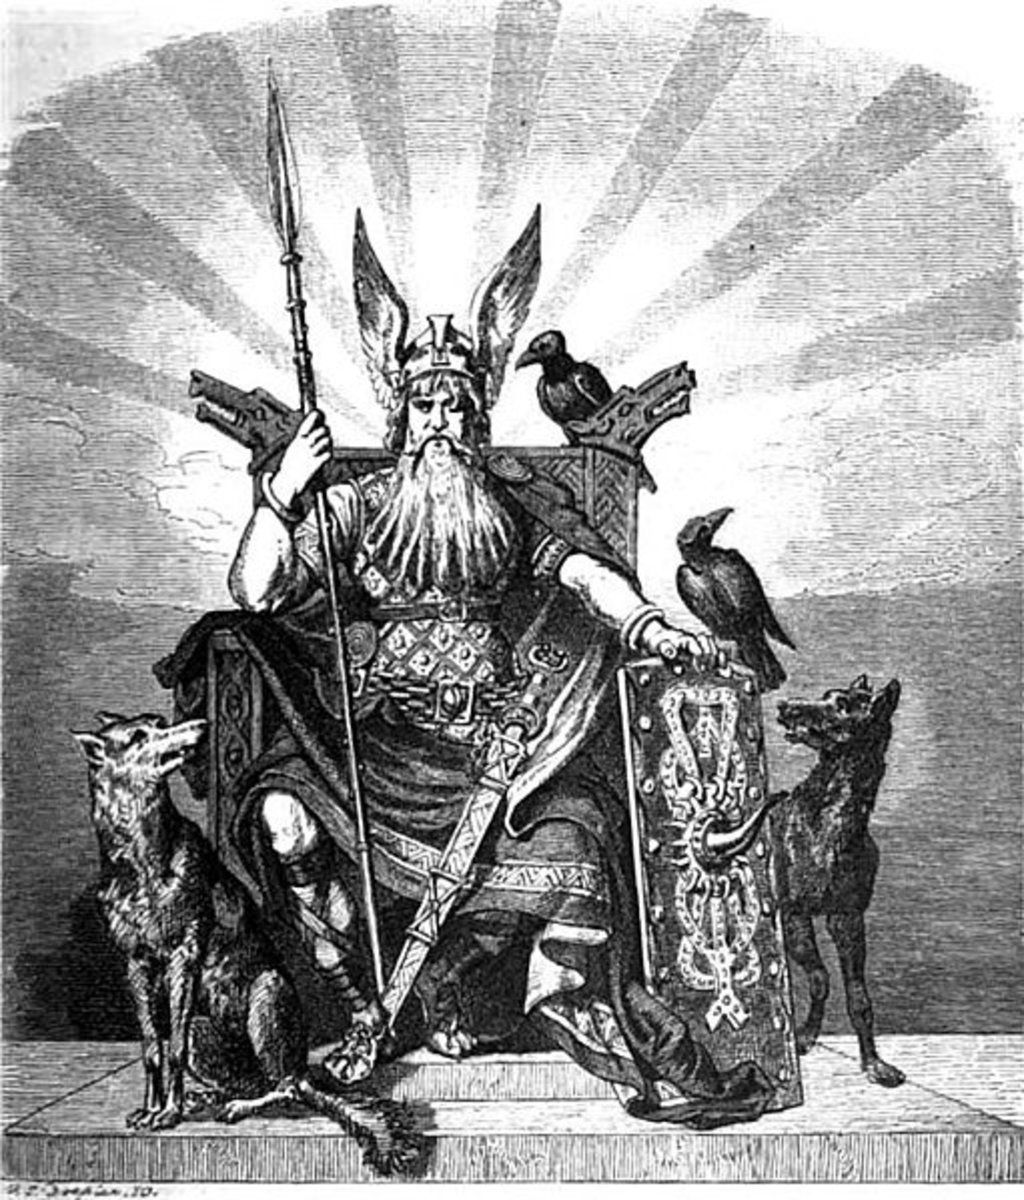 Norse Mythology: The Eighteen Charms Known by Odin